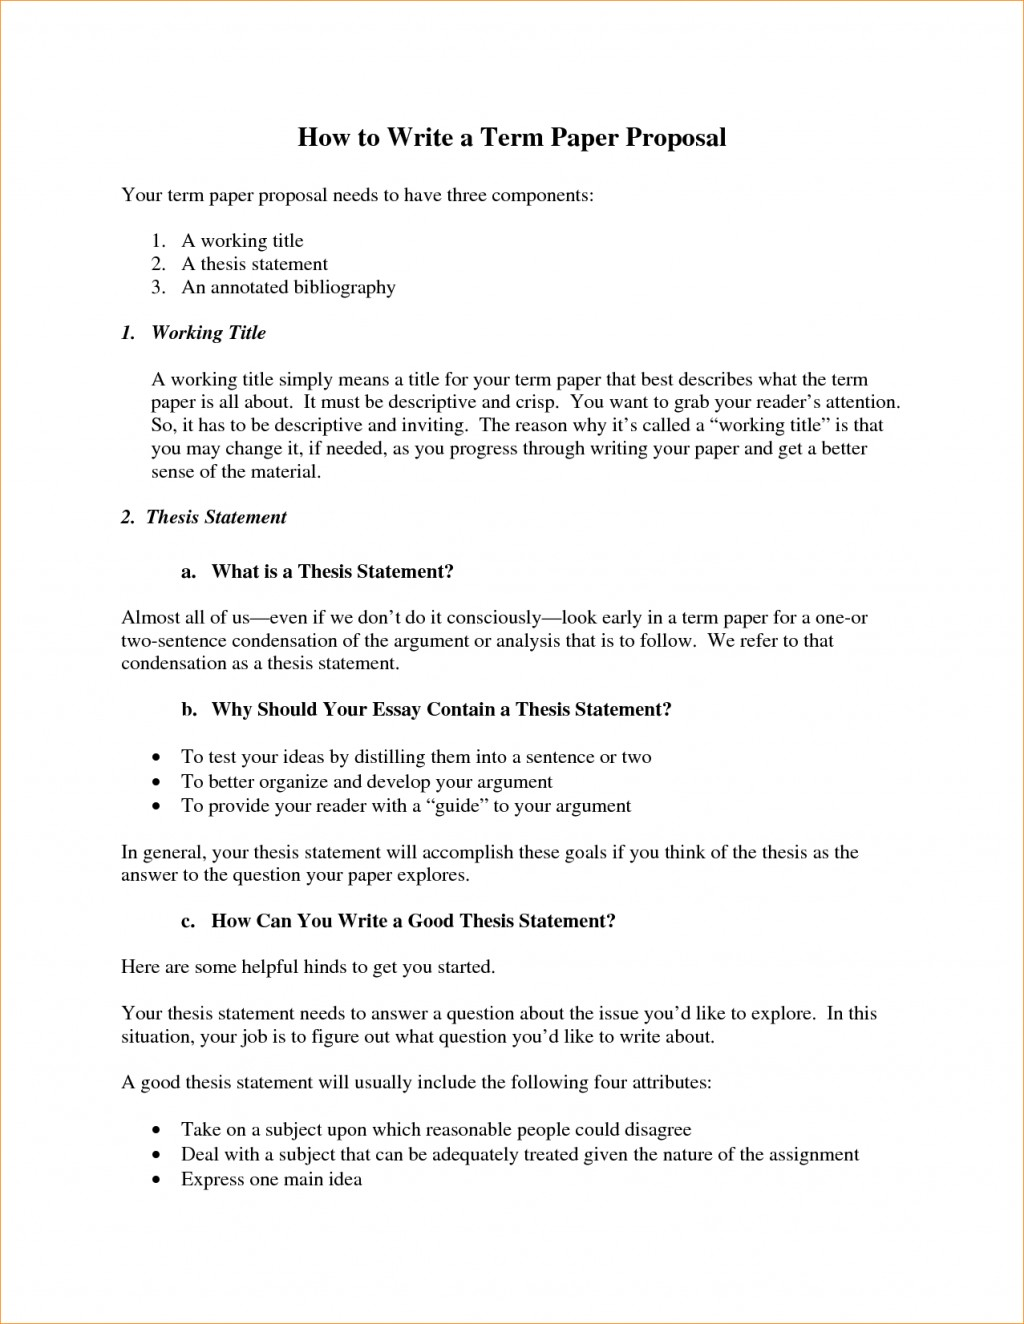 009 How To Write Proposal An Essay Shocking Example For History Mla Large